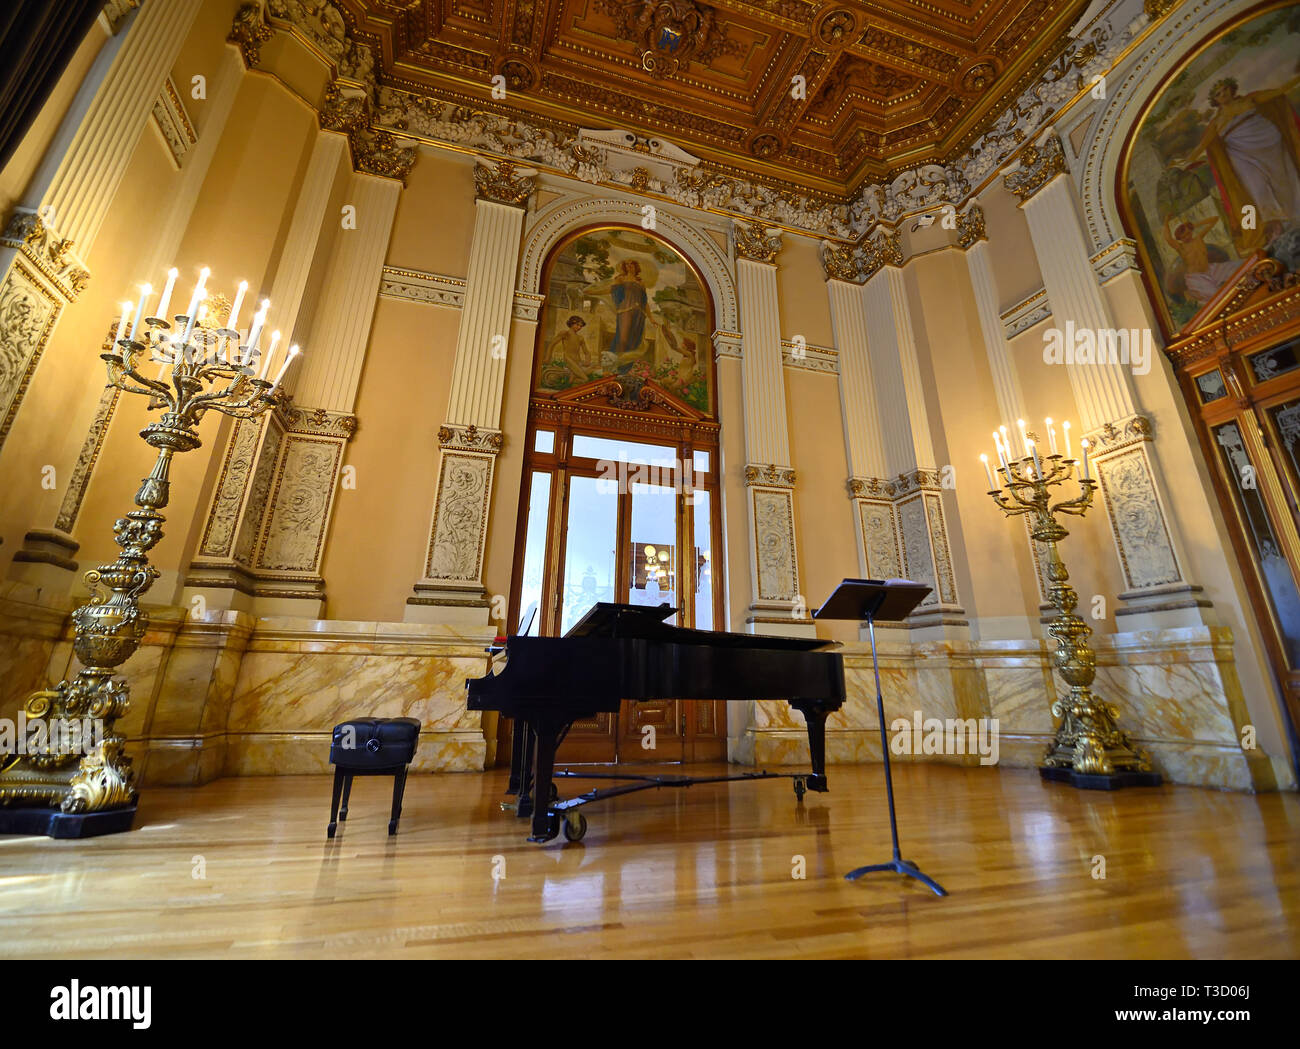 Mexico City, Mexico - March 10, 2019: Interior of Museo Nacional de Arte (MUNAL) old Palace of Communications in Mexico City. - Stock Image